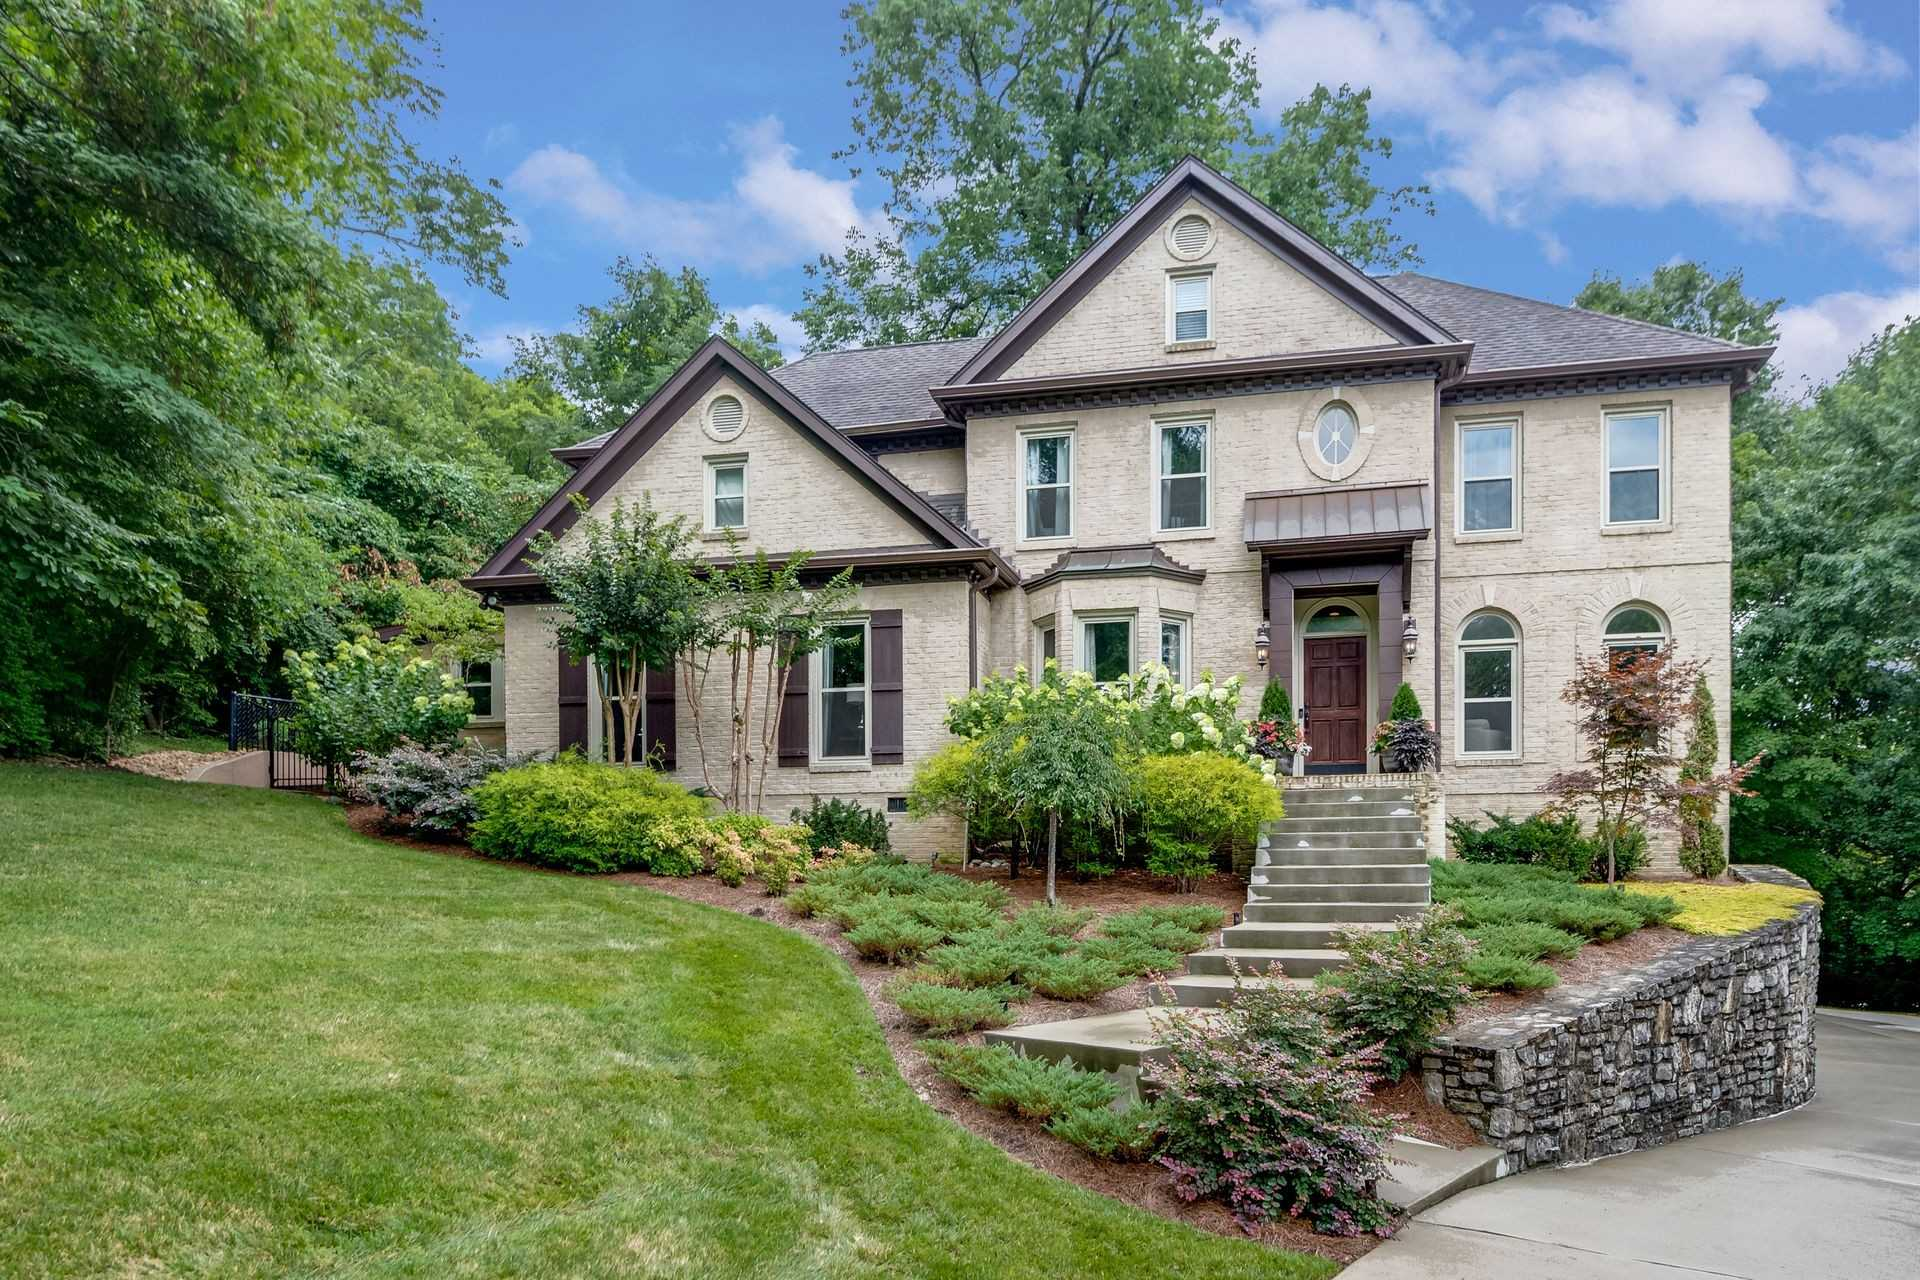 $2,300,000 - 4Br/4Ba -  for Sale in Granny White Pike, Brentwood